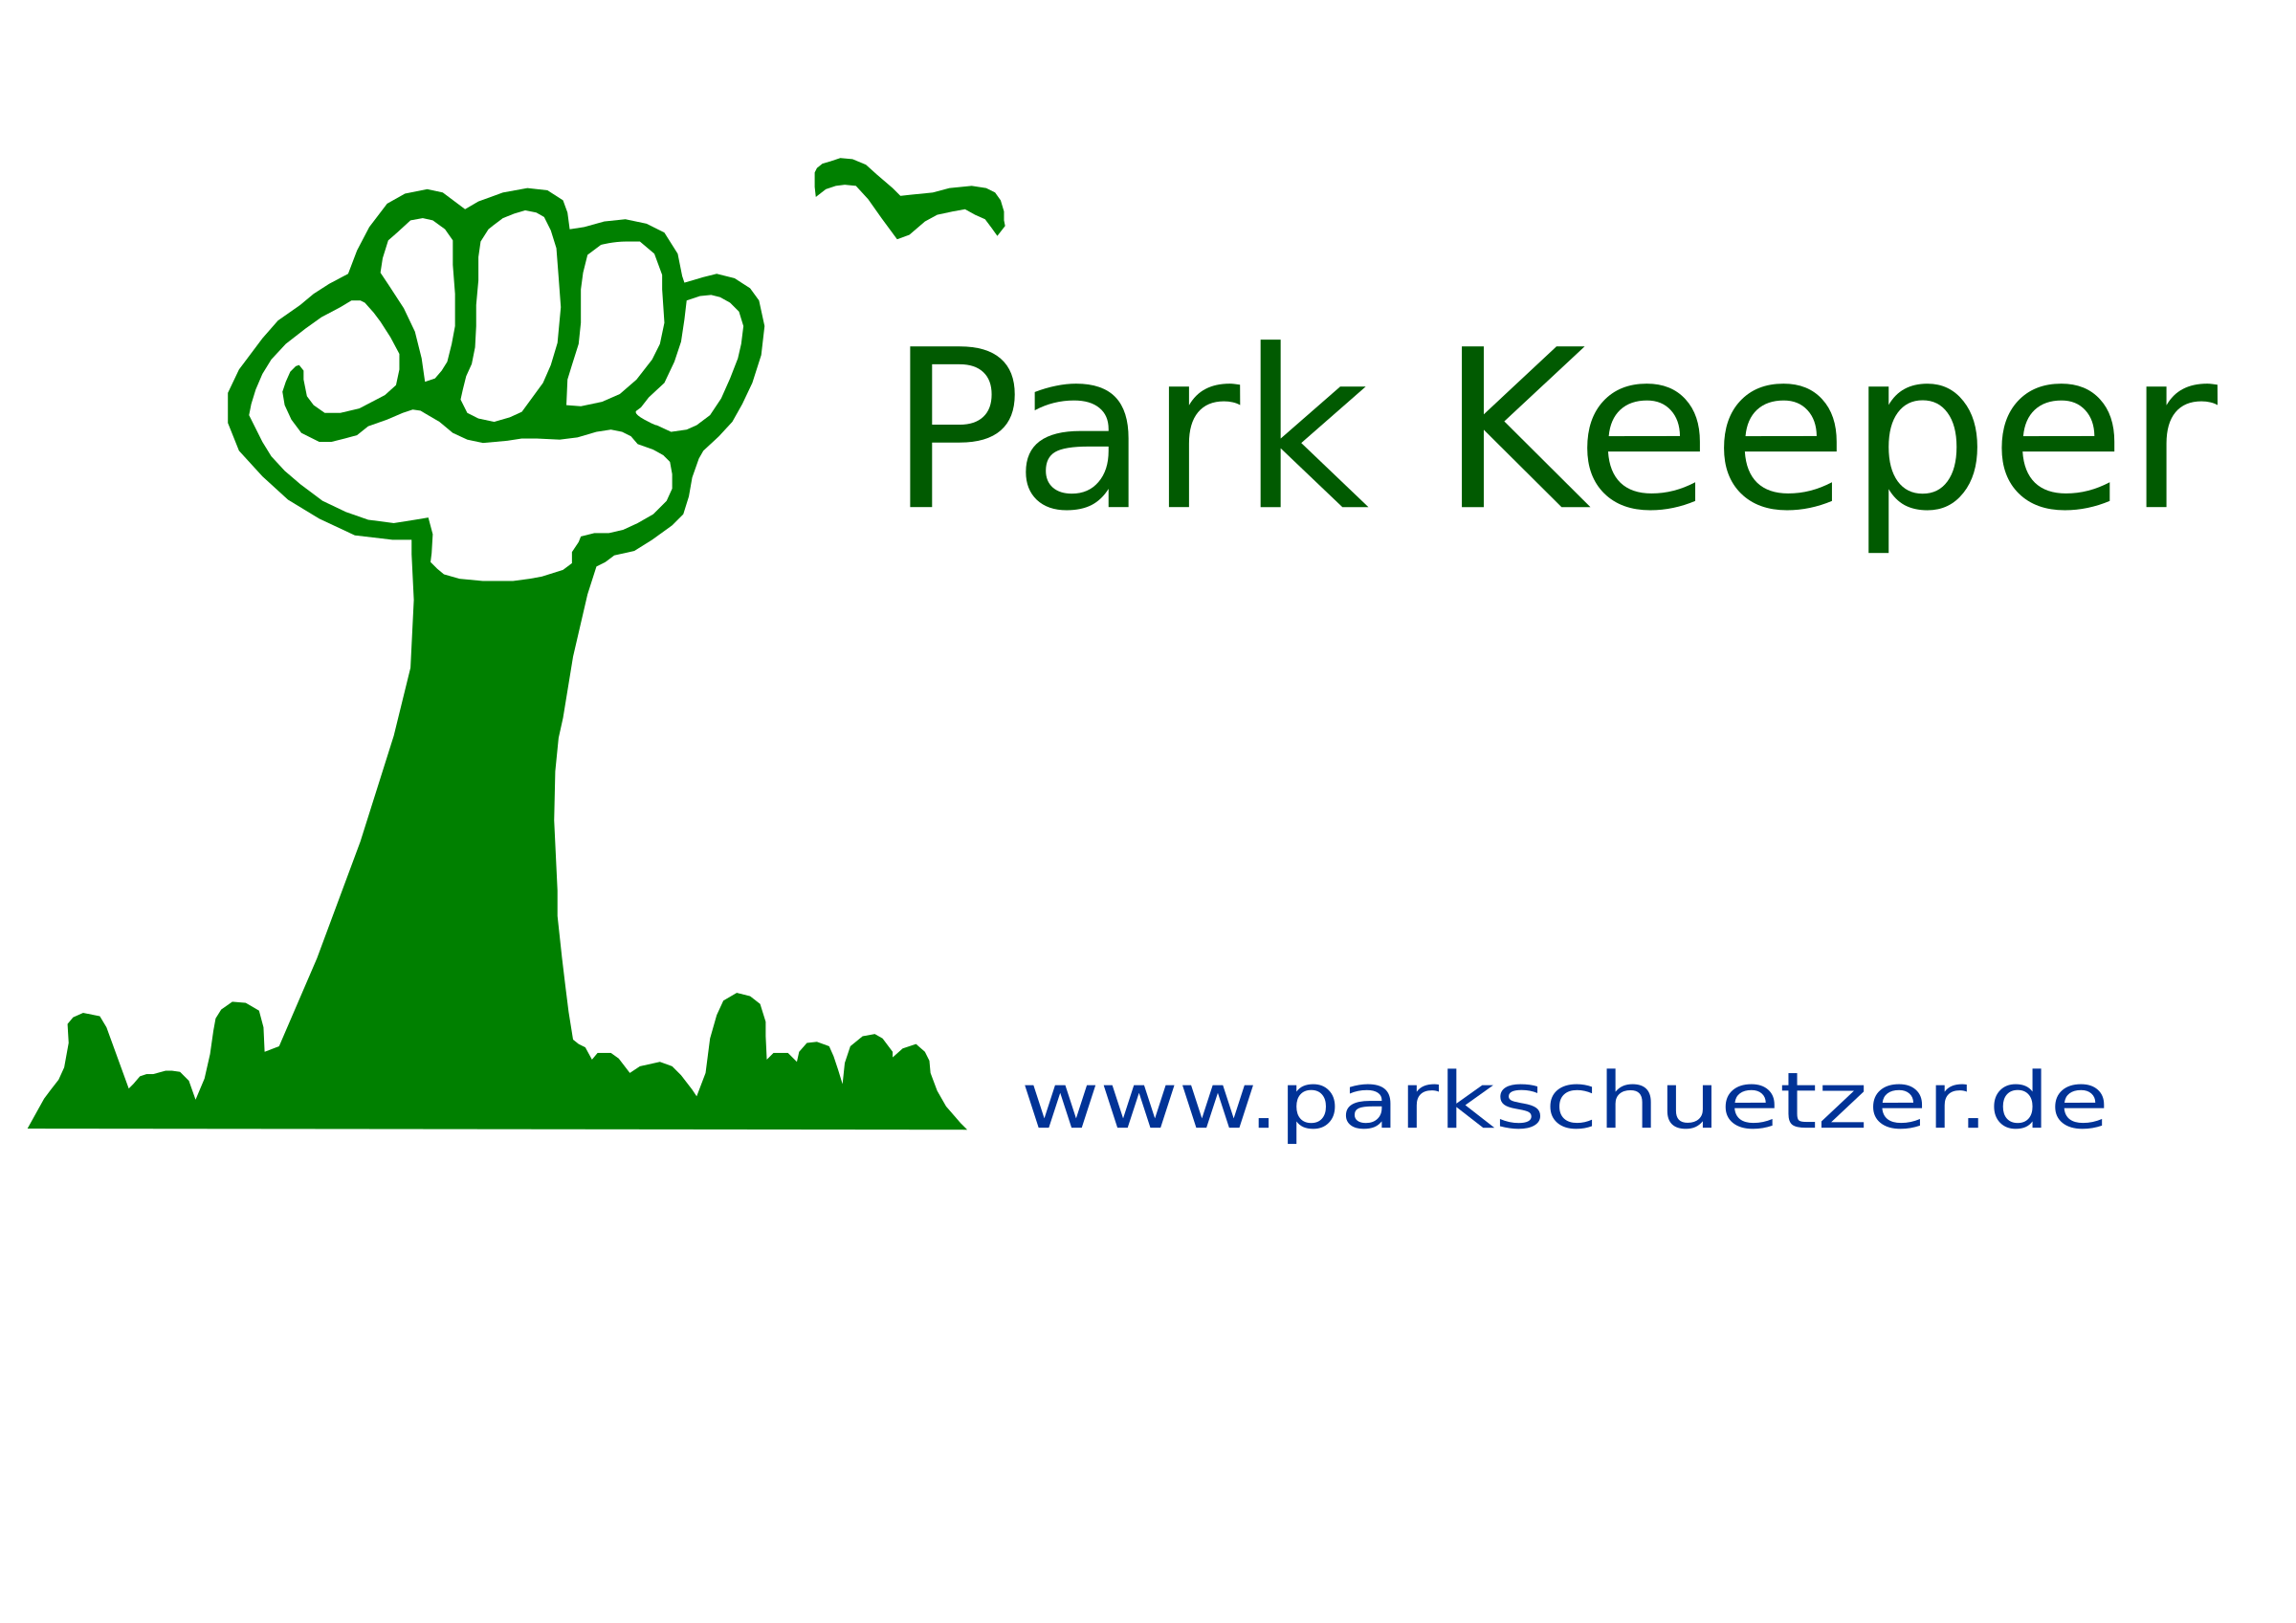 Park Keeper by lusp